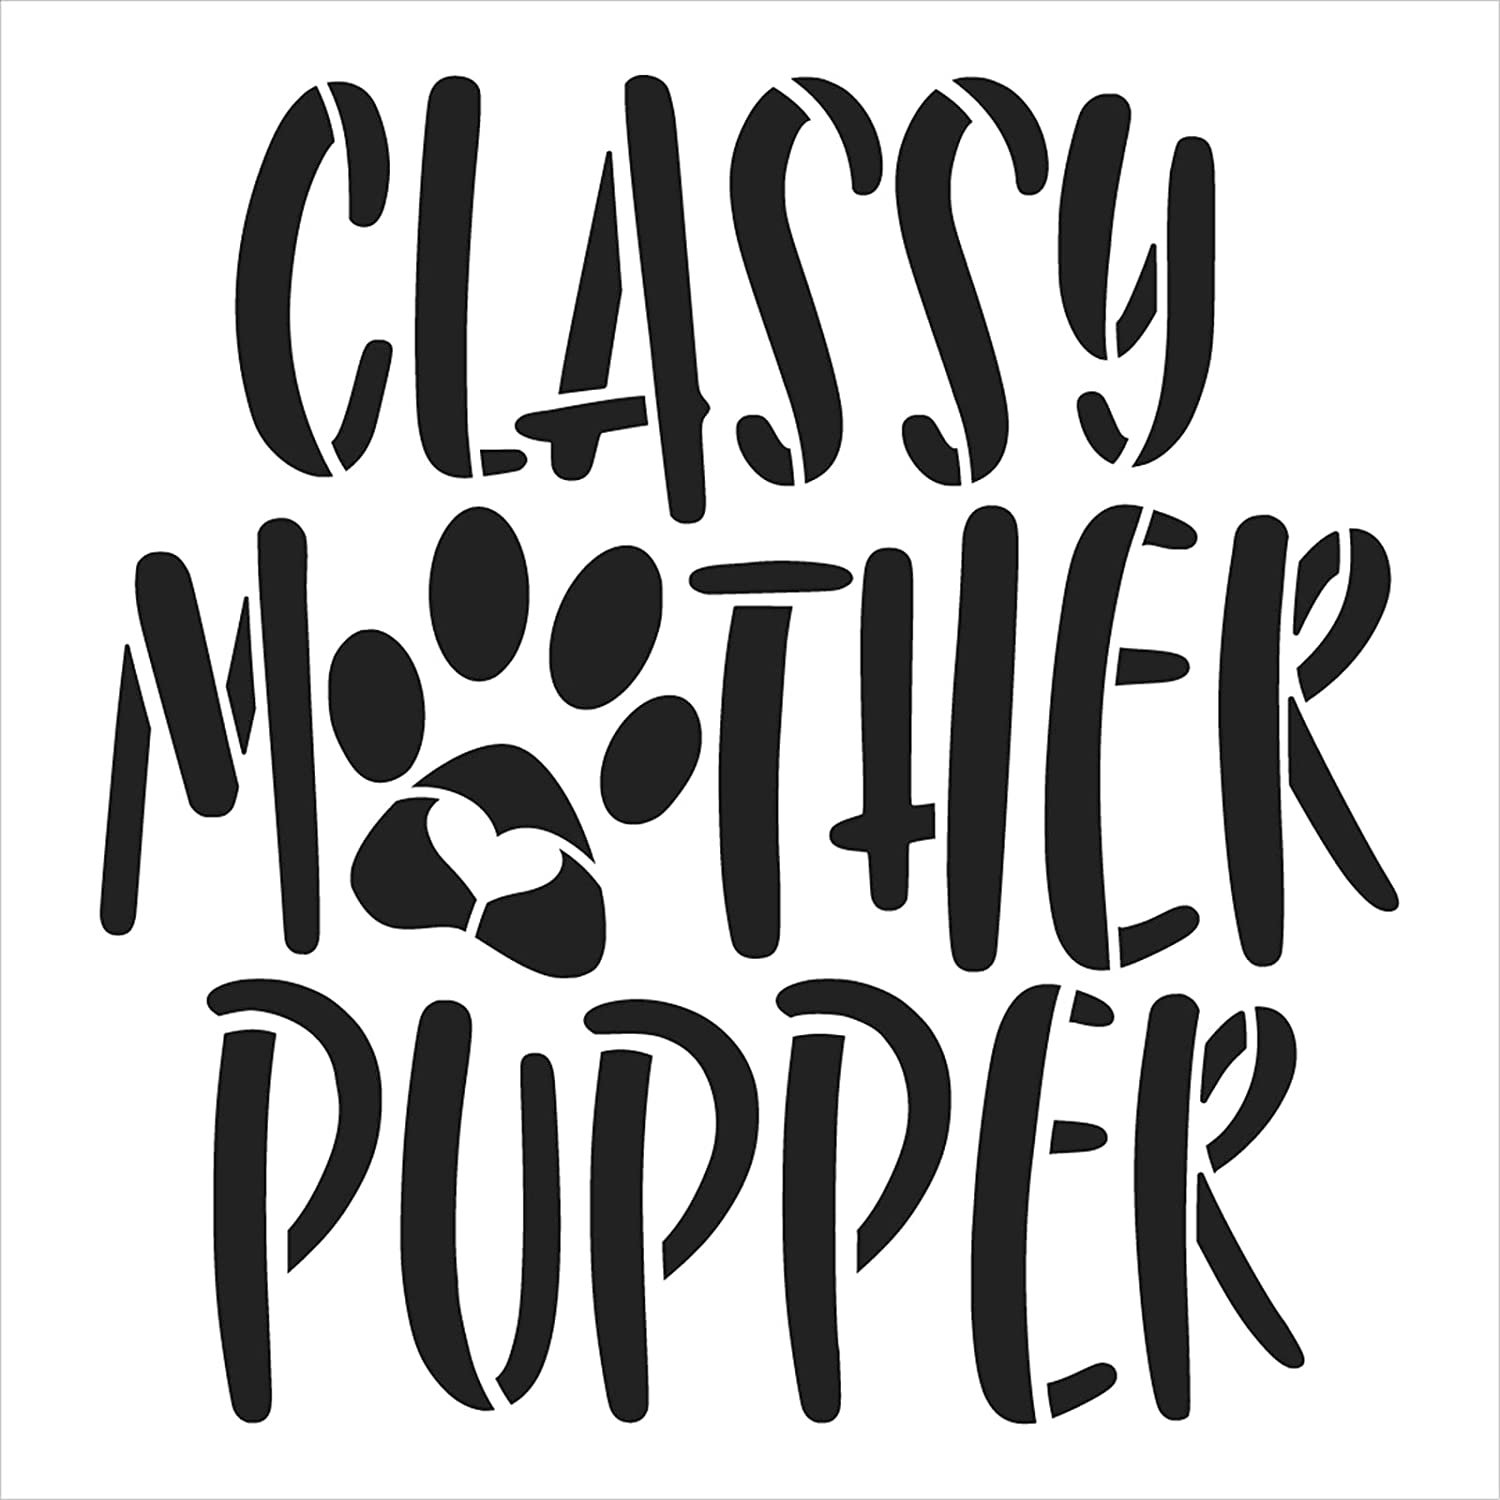 Classy Mother Pupper Stencil by StudioR12 | Craft DIY Dog Lover Home Decor | Paint Pet Pawprint Wood Sign | Reusable Mylar Template | Select Size